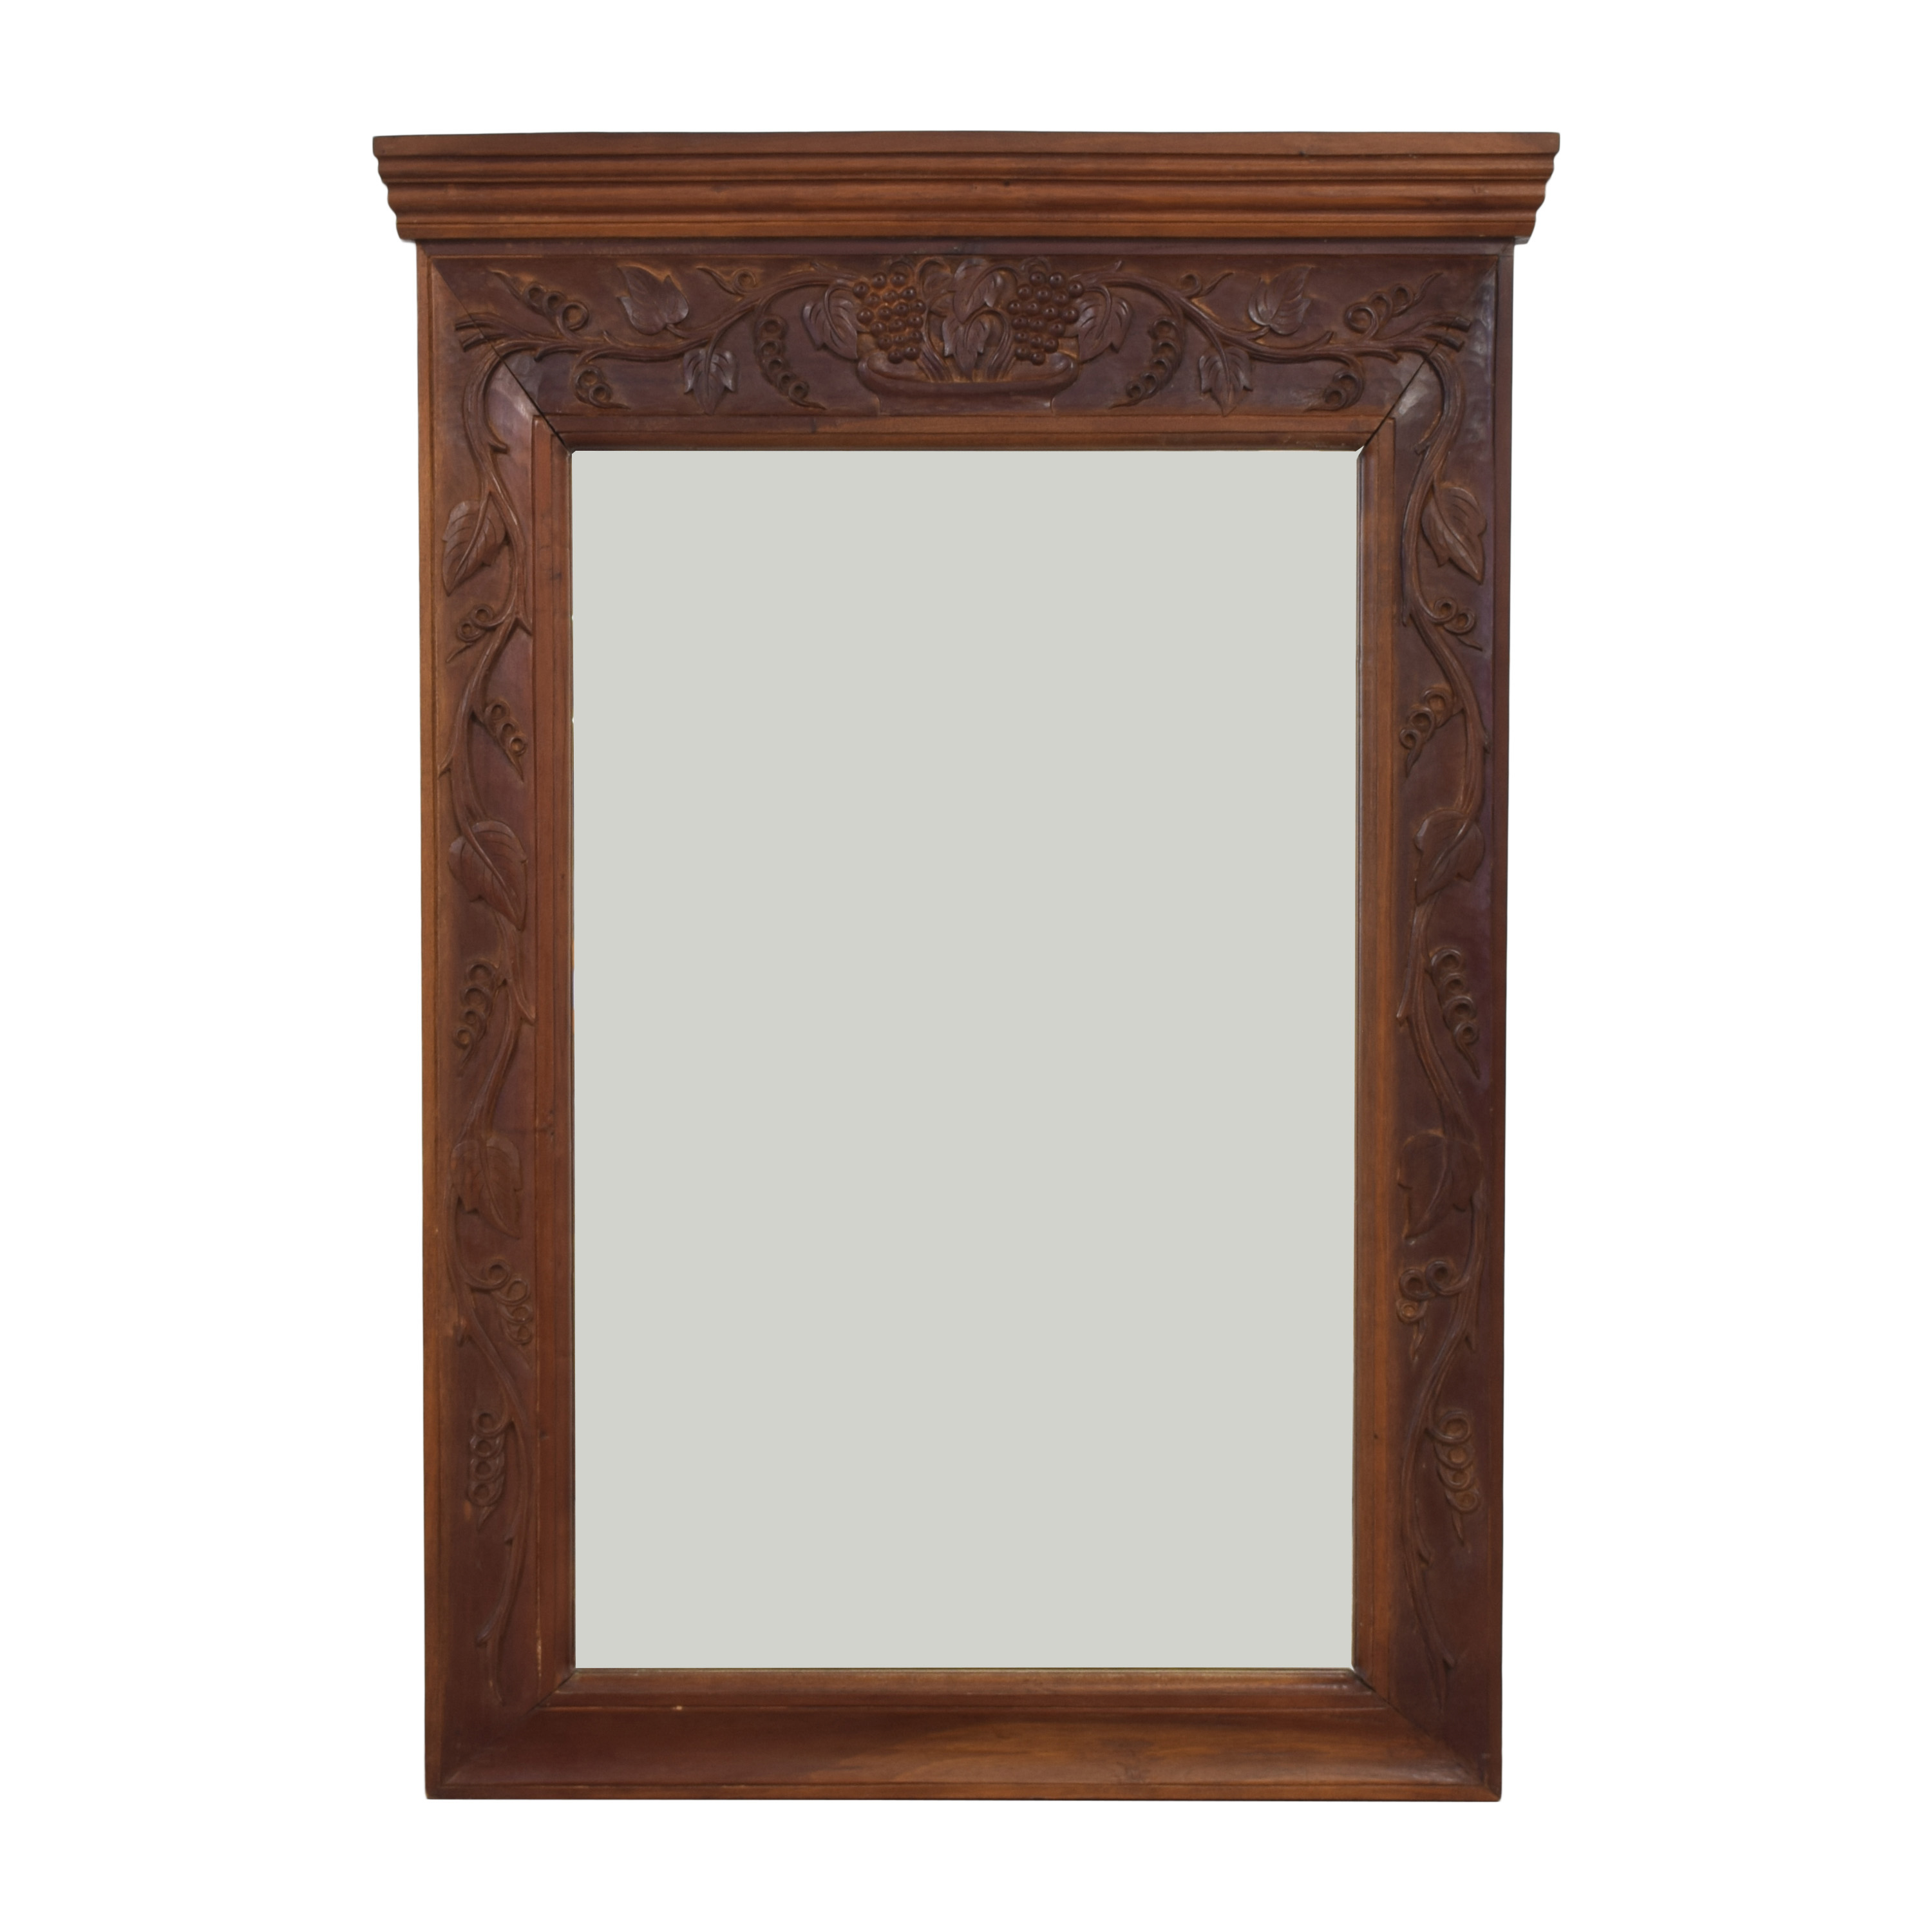 Chilean Mirror Wall Mirror used